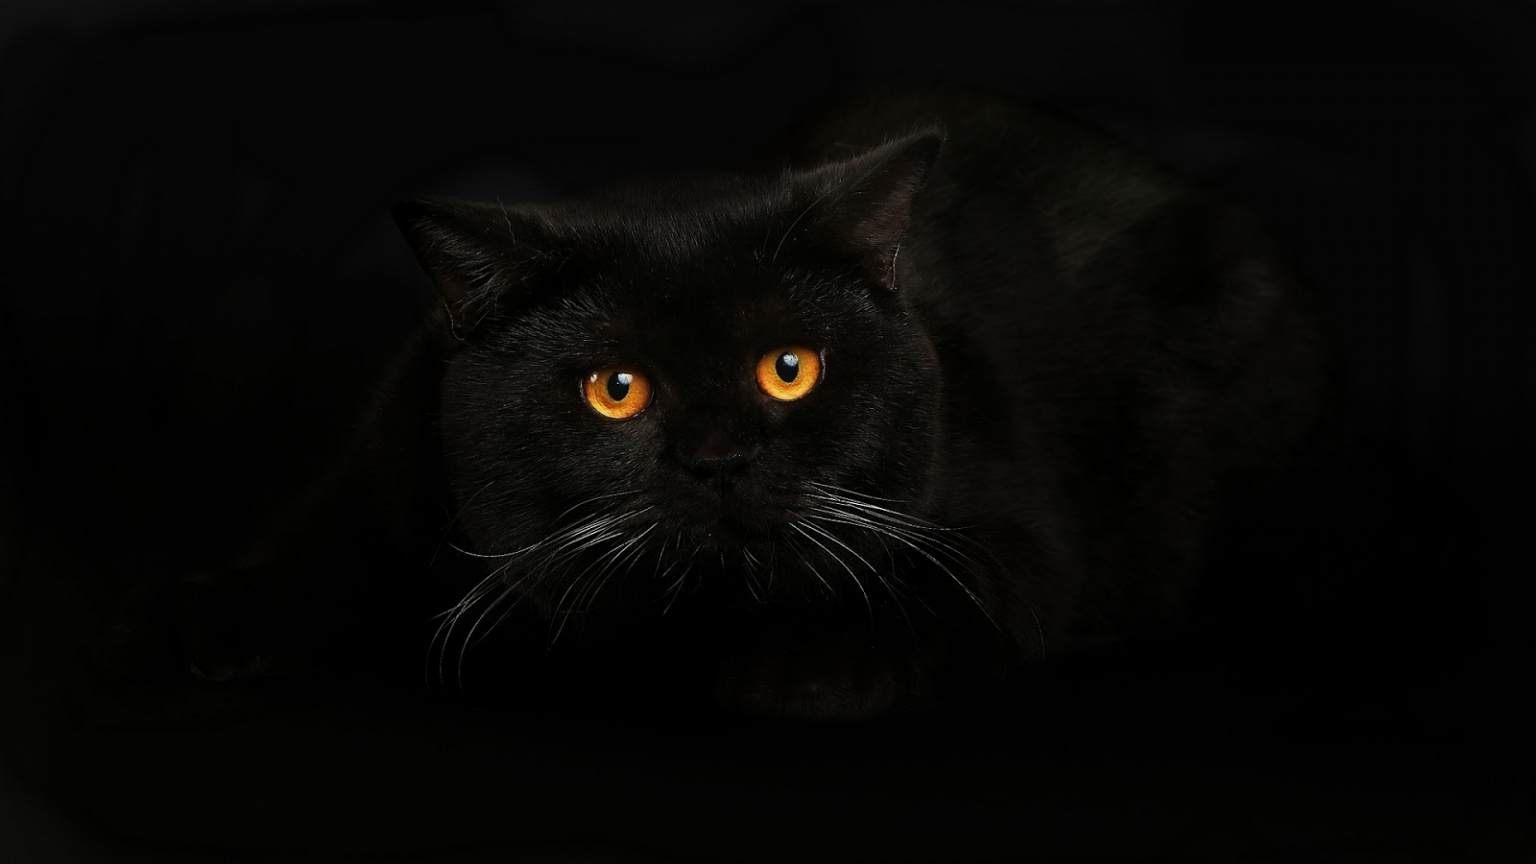 Free Download Black Cat Wallpaper Best Hd Wallpapers 1600x900